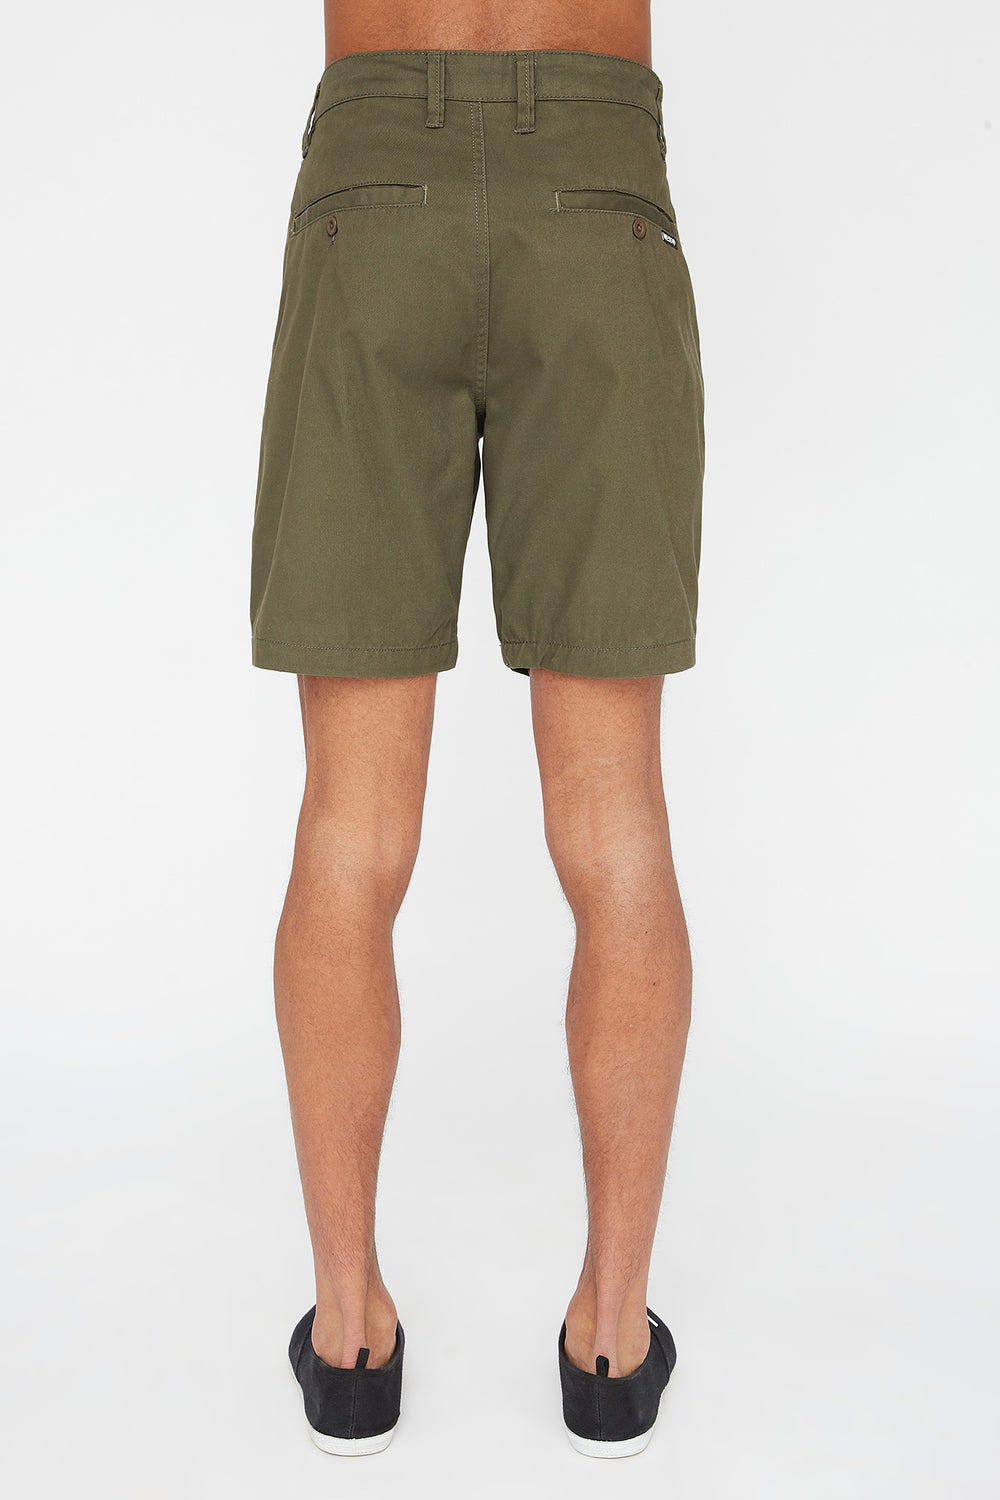 West49 Mens Slim Short Khaki